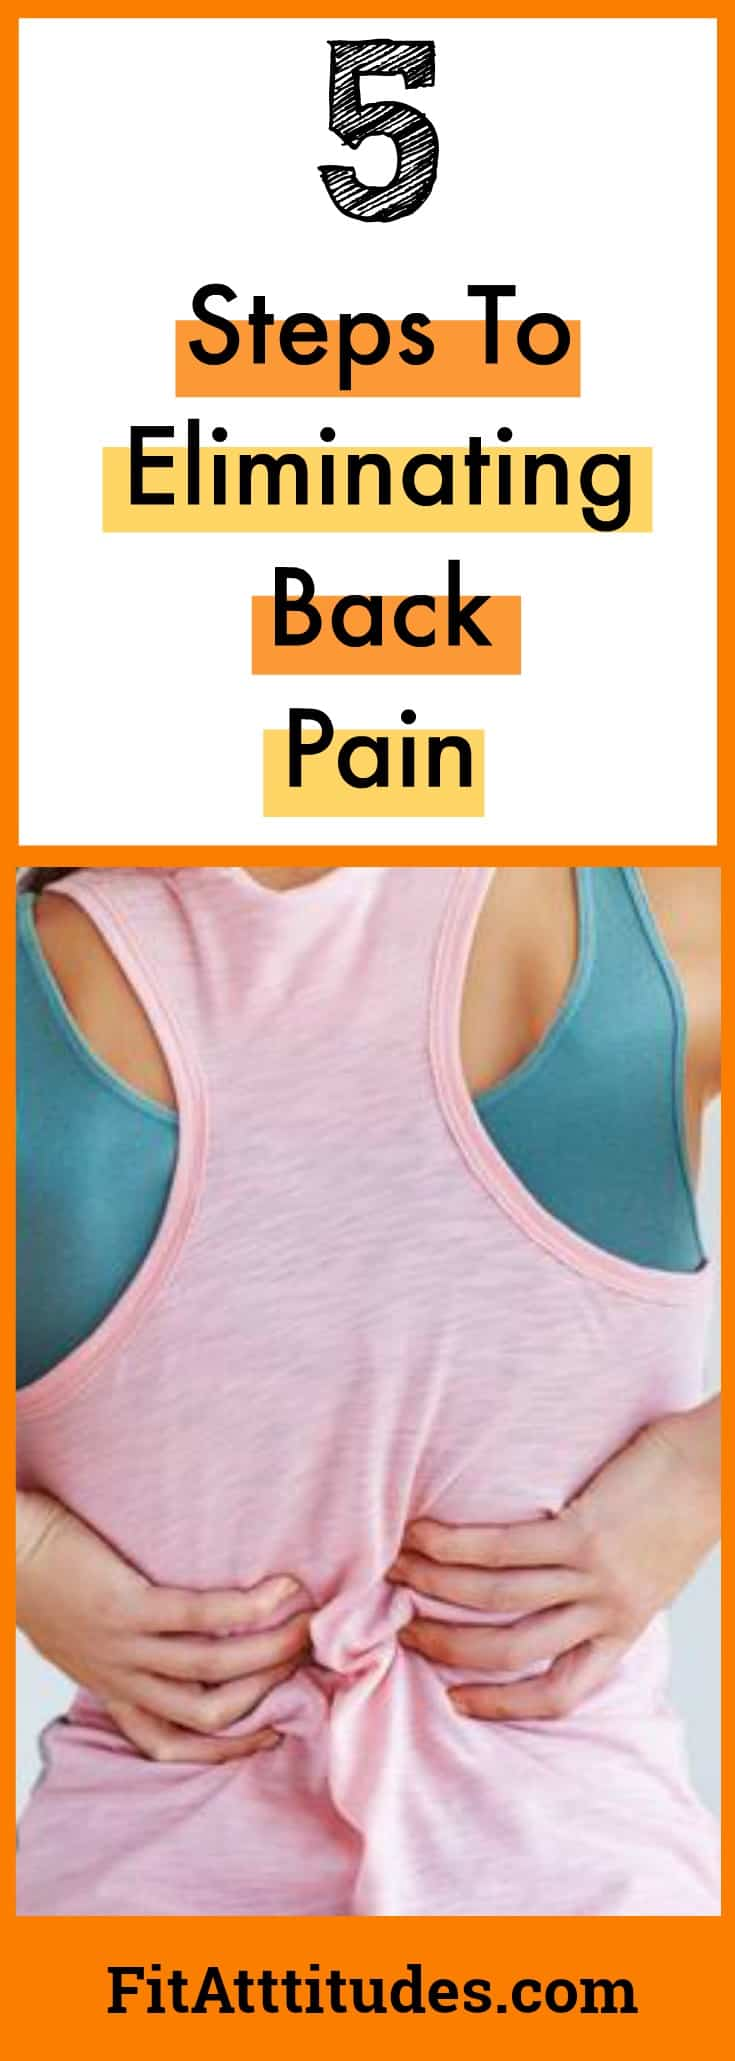 Eliminate Back Pain